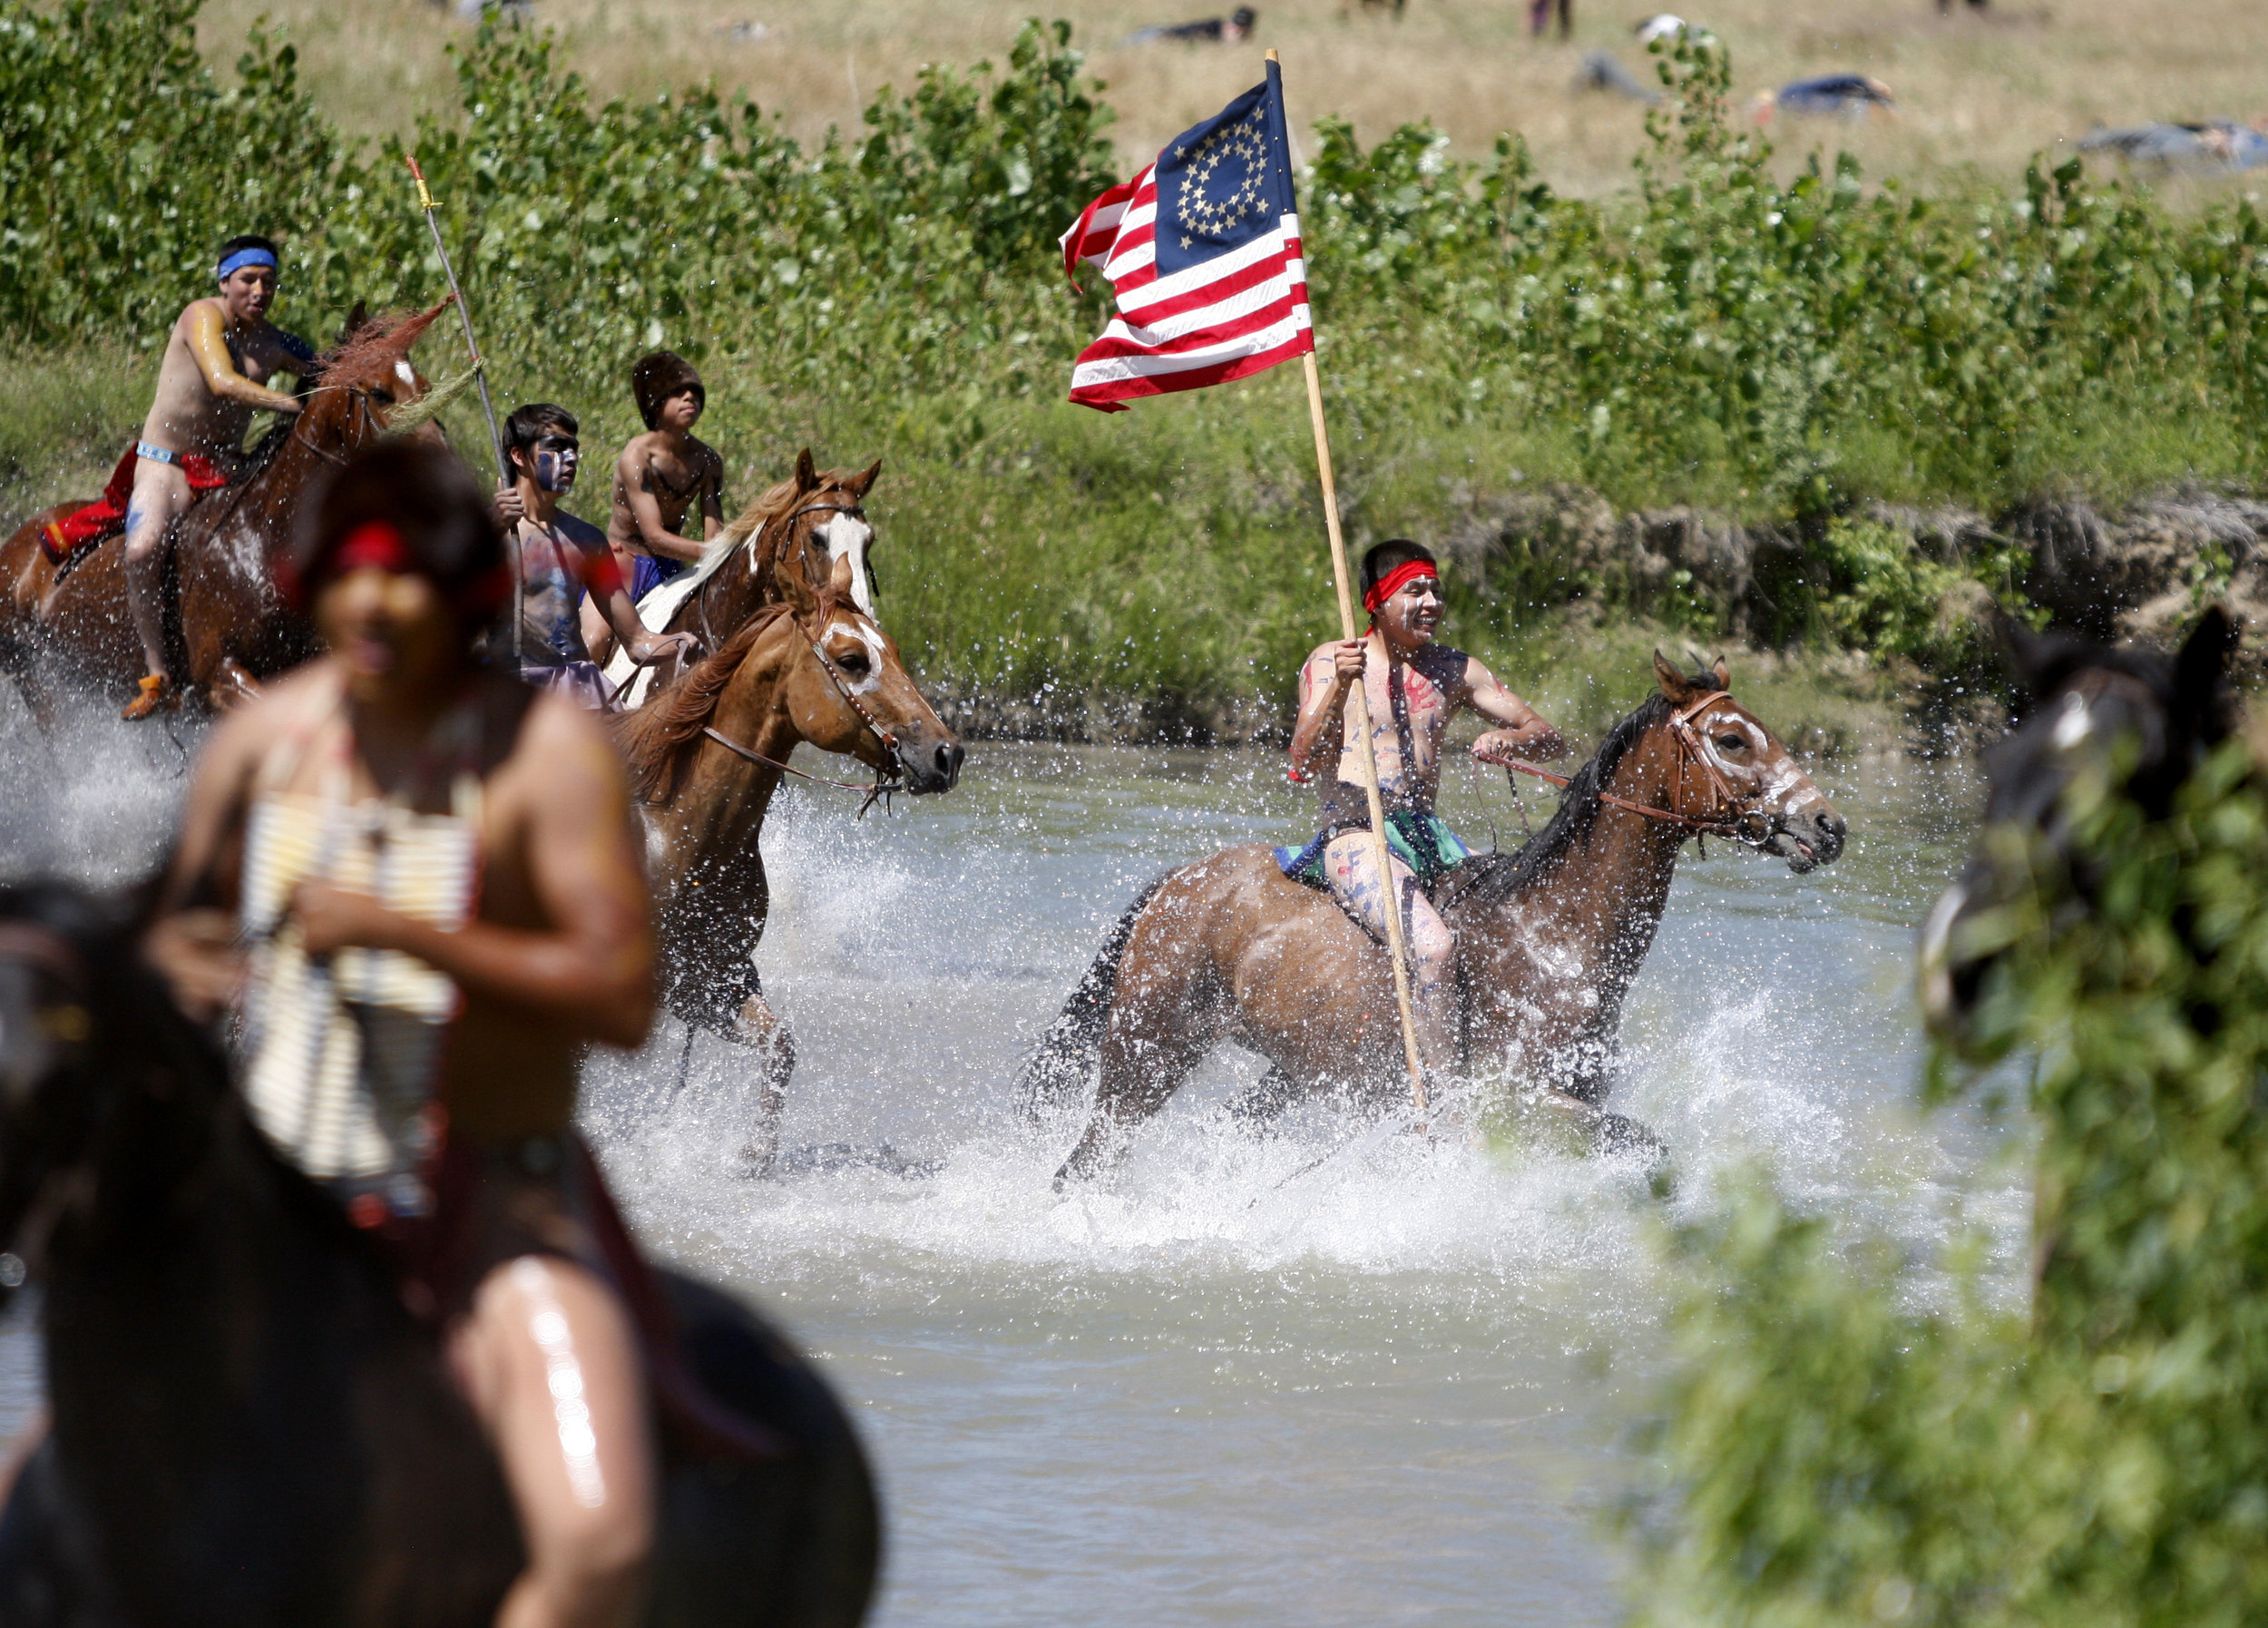 Actors return across the river after defeating Custer in the annual Battle of the Little Bighorn Re-enactment held on the Crow Reservation.